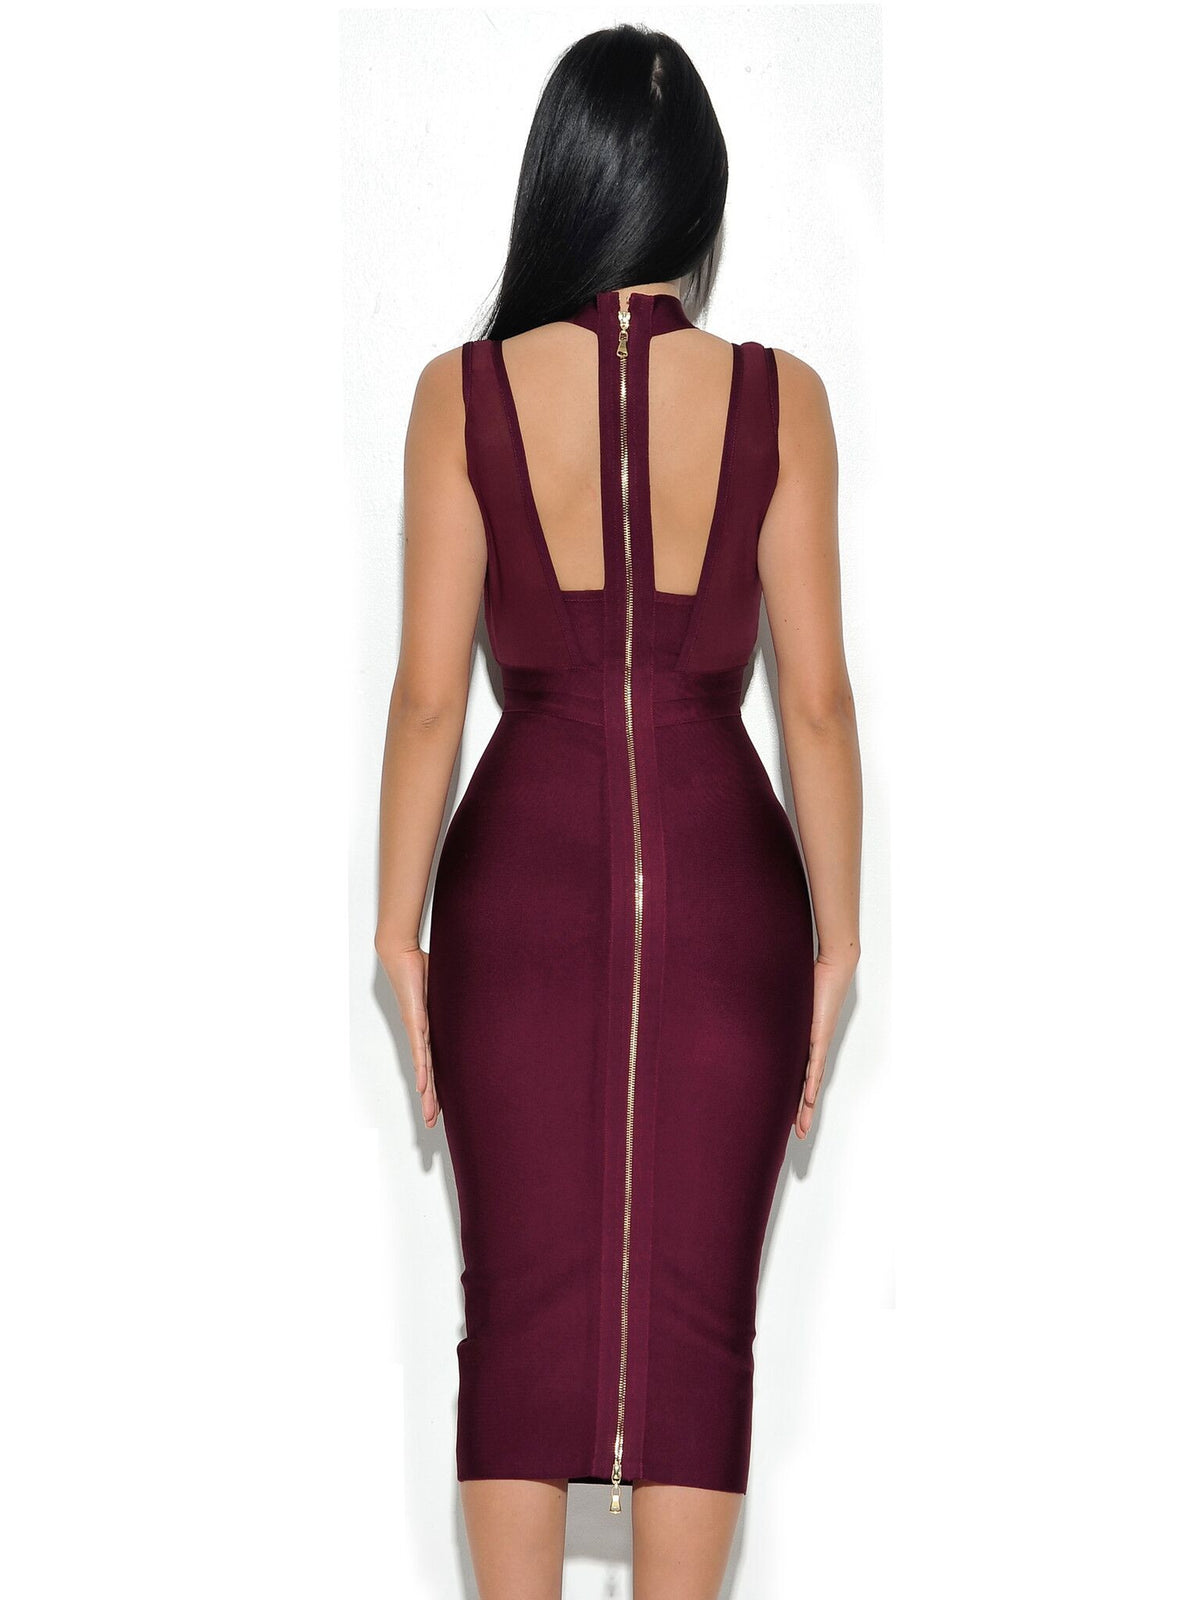 High Waist Bandage Dress - Couture Stalker